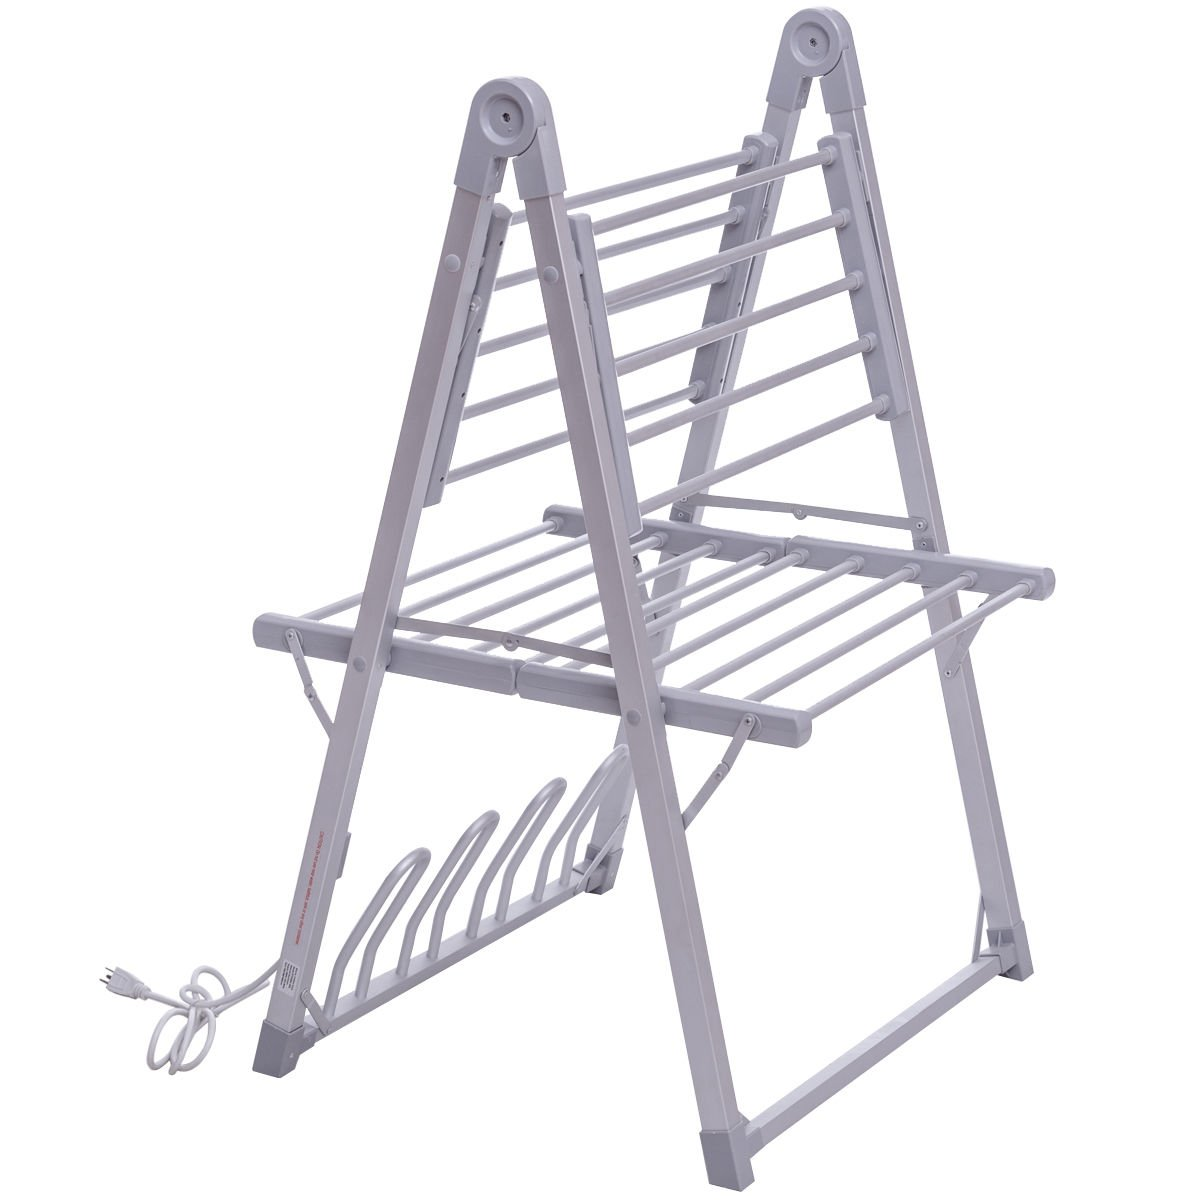 TANGKULA Towel Warmer Foldable Free Standing Multifunction Clothes Towels Shoes Drying Rack for Home Bathroom Space Saving Towel Heater Hanger (Silver with Shoe Drying Rack)